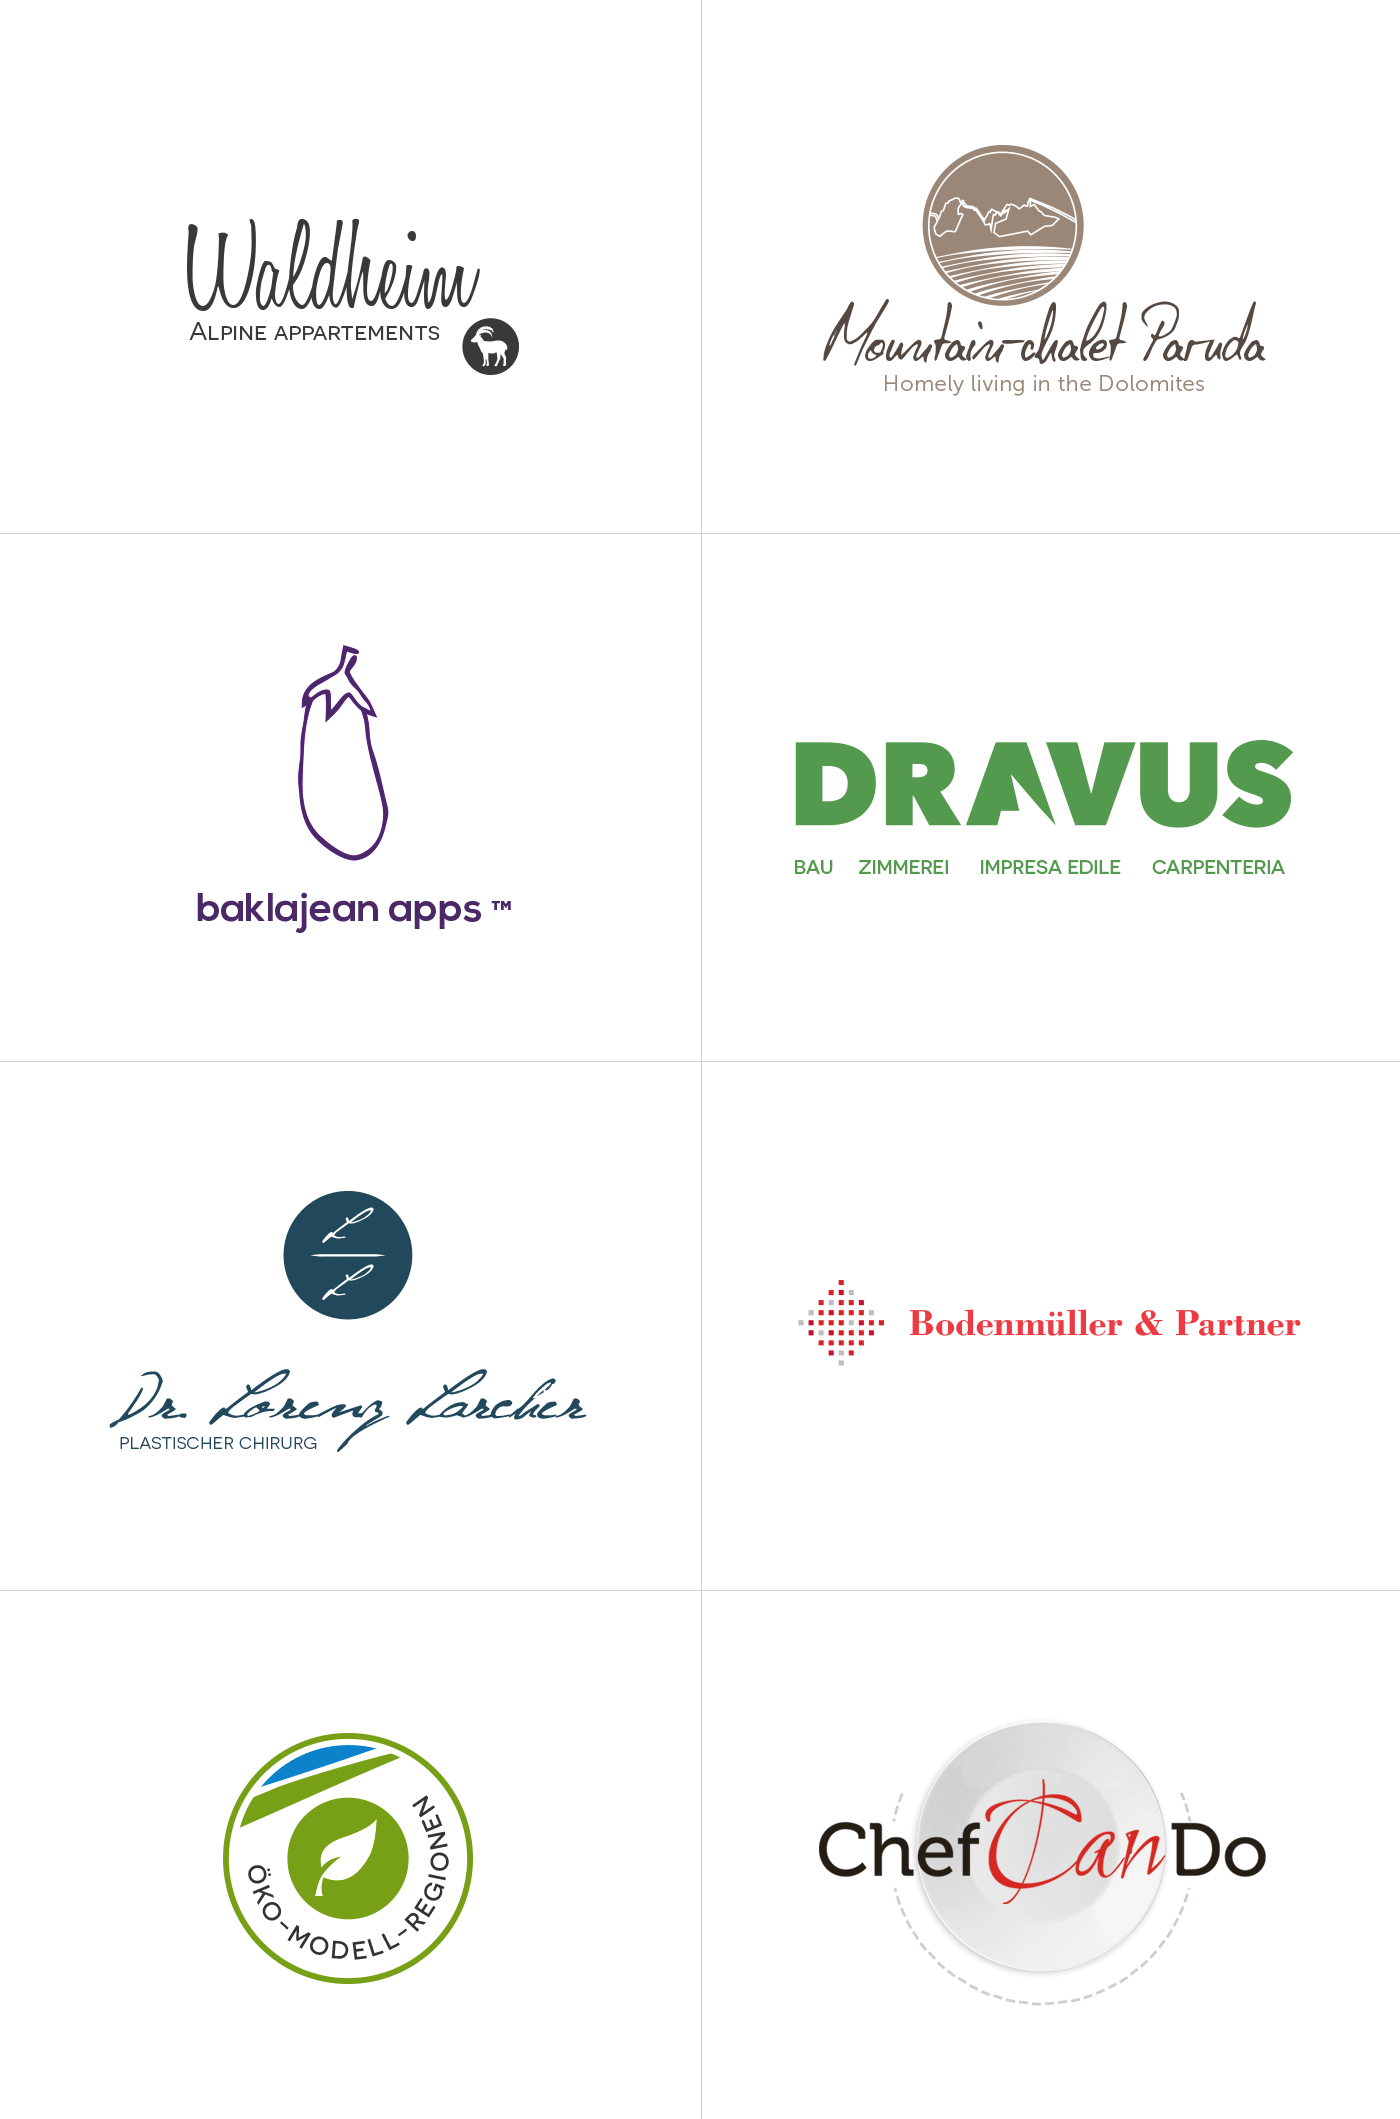 logo design matus braxatoris